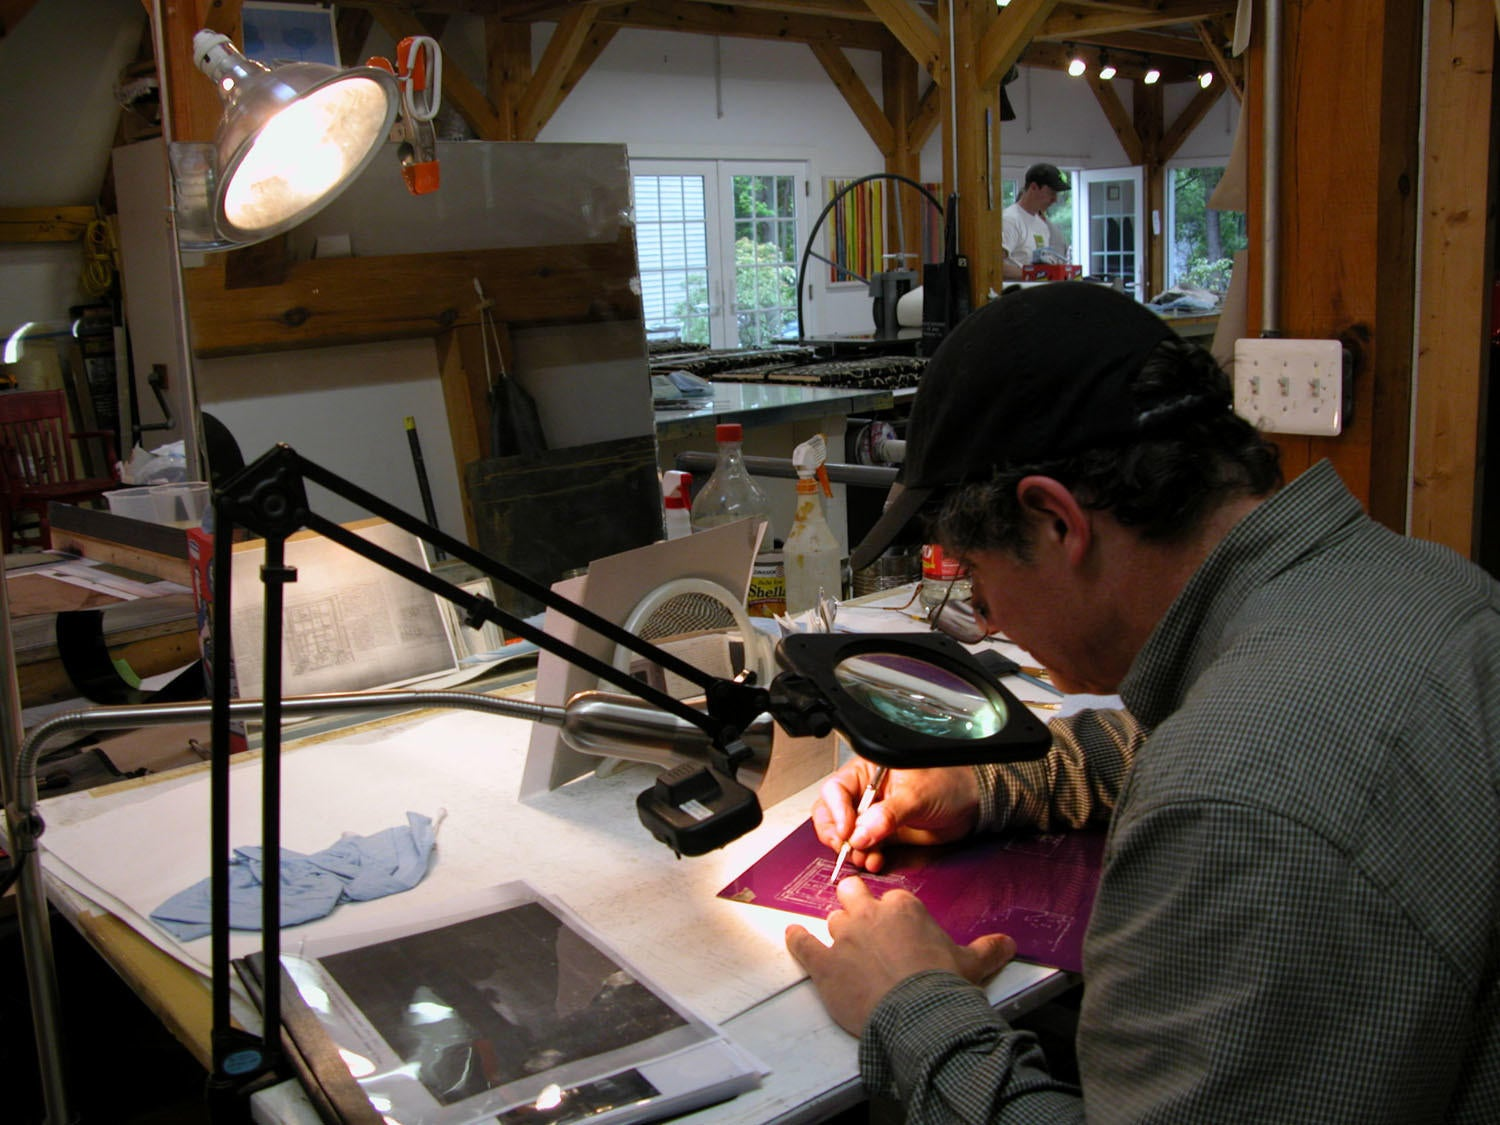 Photograph of the Artist at Work, Center Street Studio image